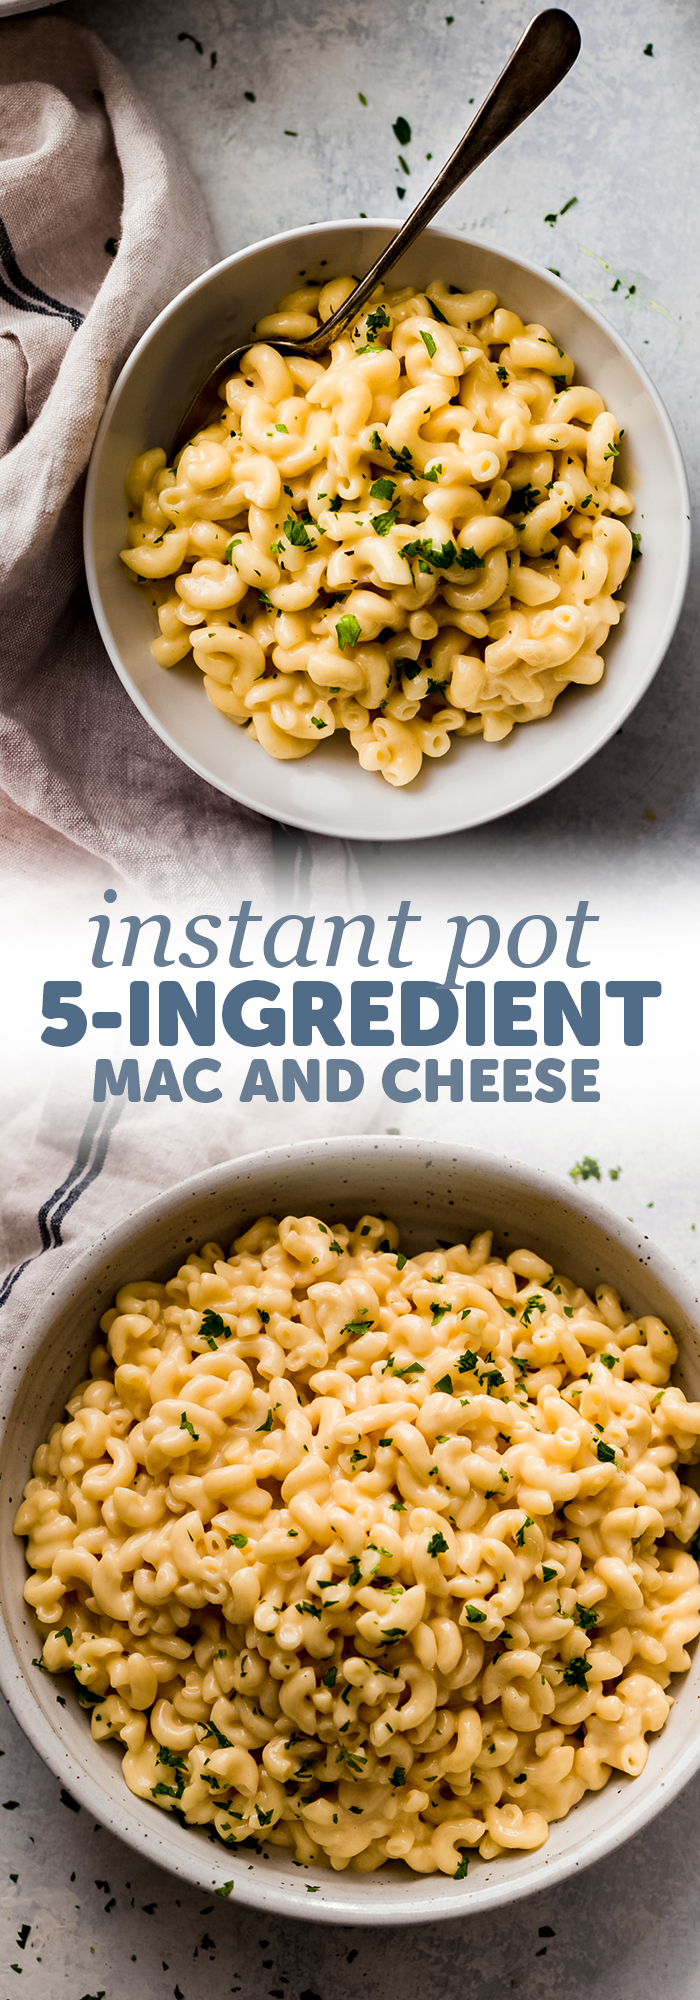 5-Ingredient Instant Pot Mac and Cheese - Learn how to make Mac and cheese in the instant pot with just 5 simple ingredients plus tons of ways to jazz it up! #instantpotmacandcheese #macandcheese #instantpot #thanksgiving | Littlespicejar.com